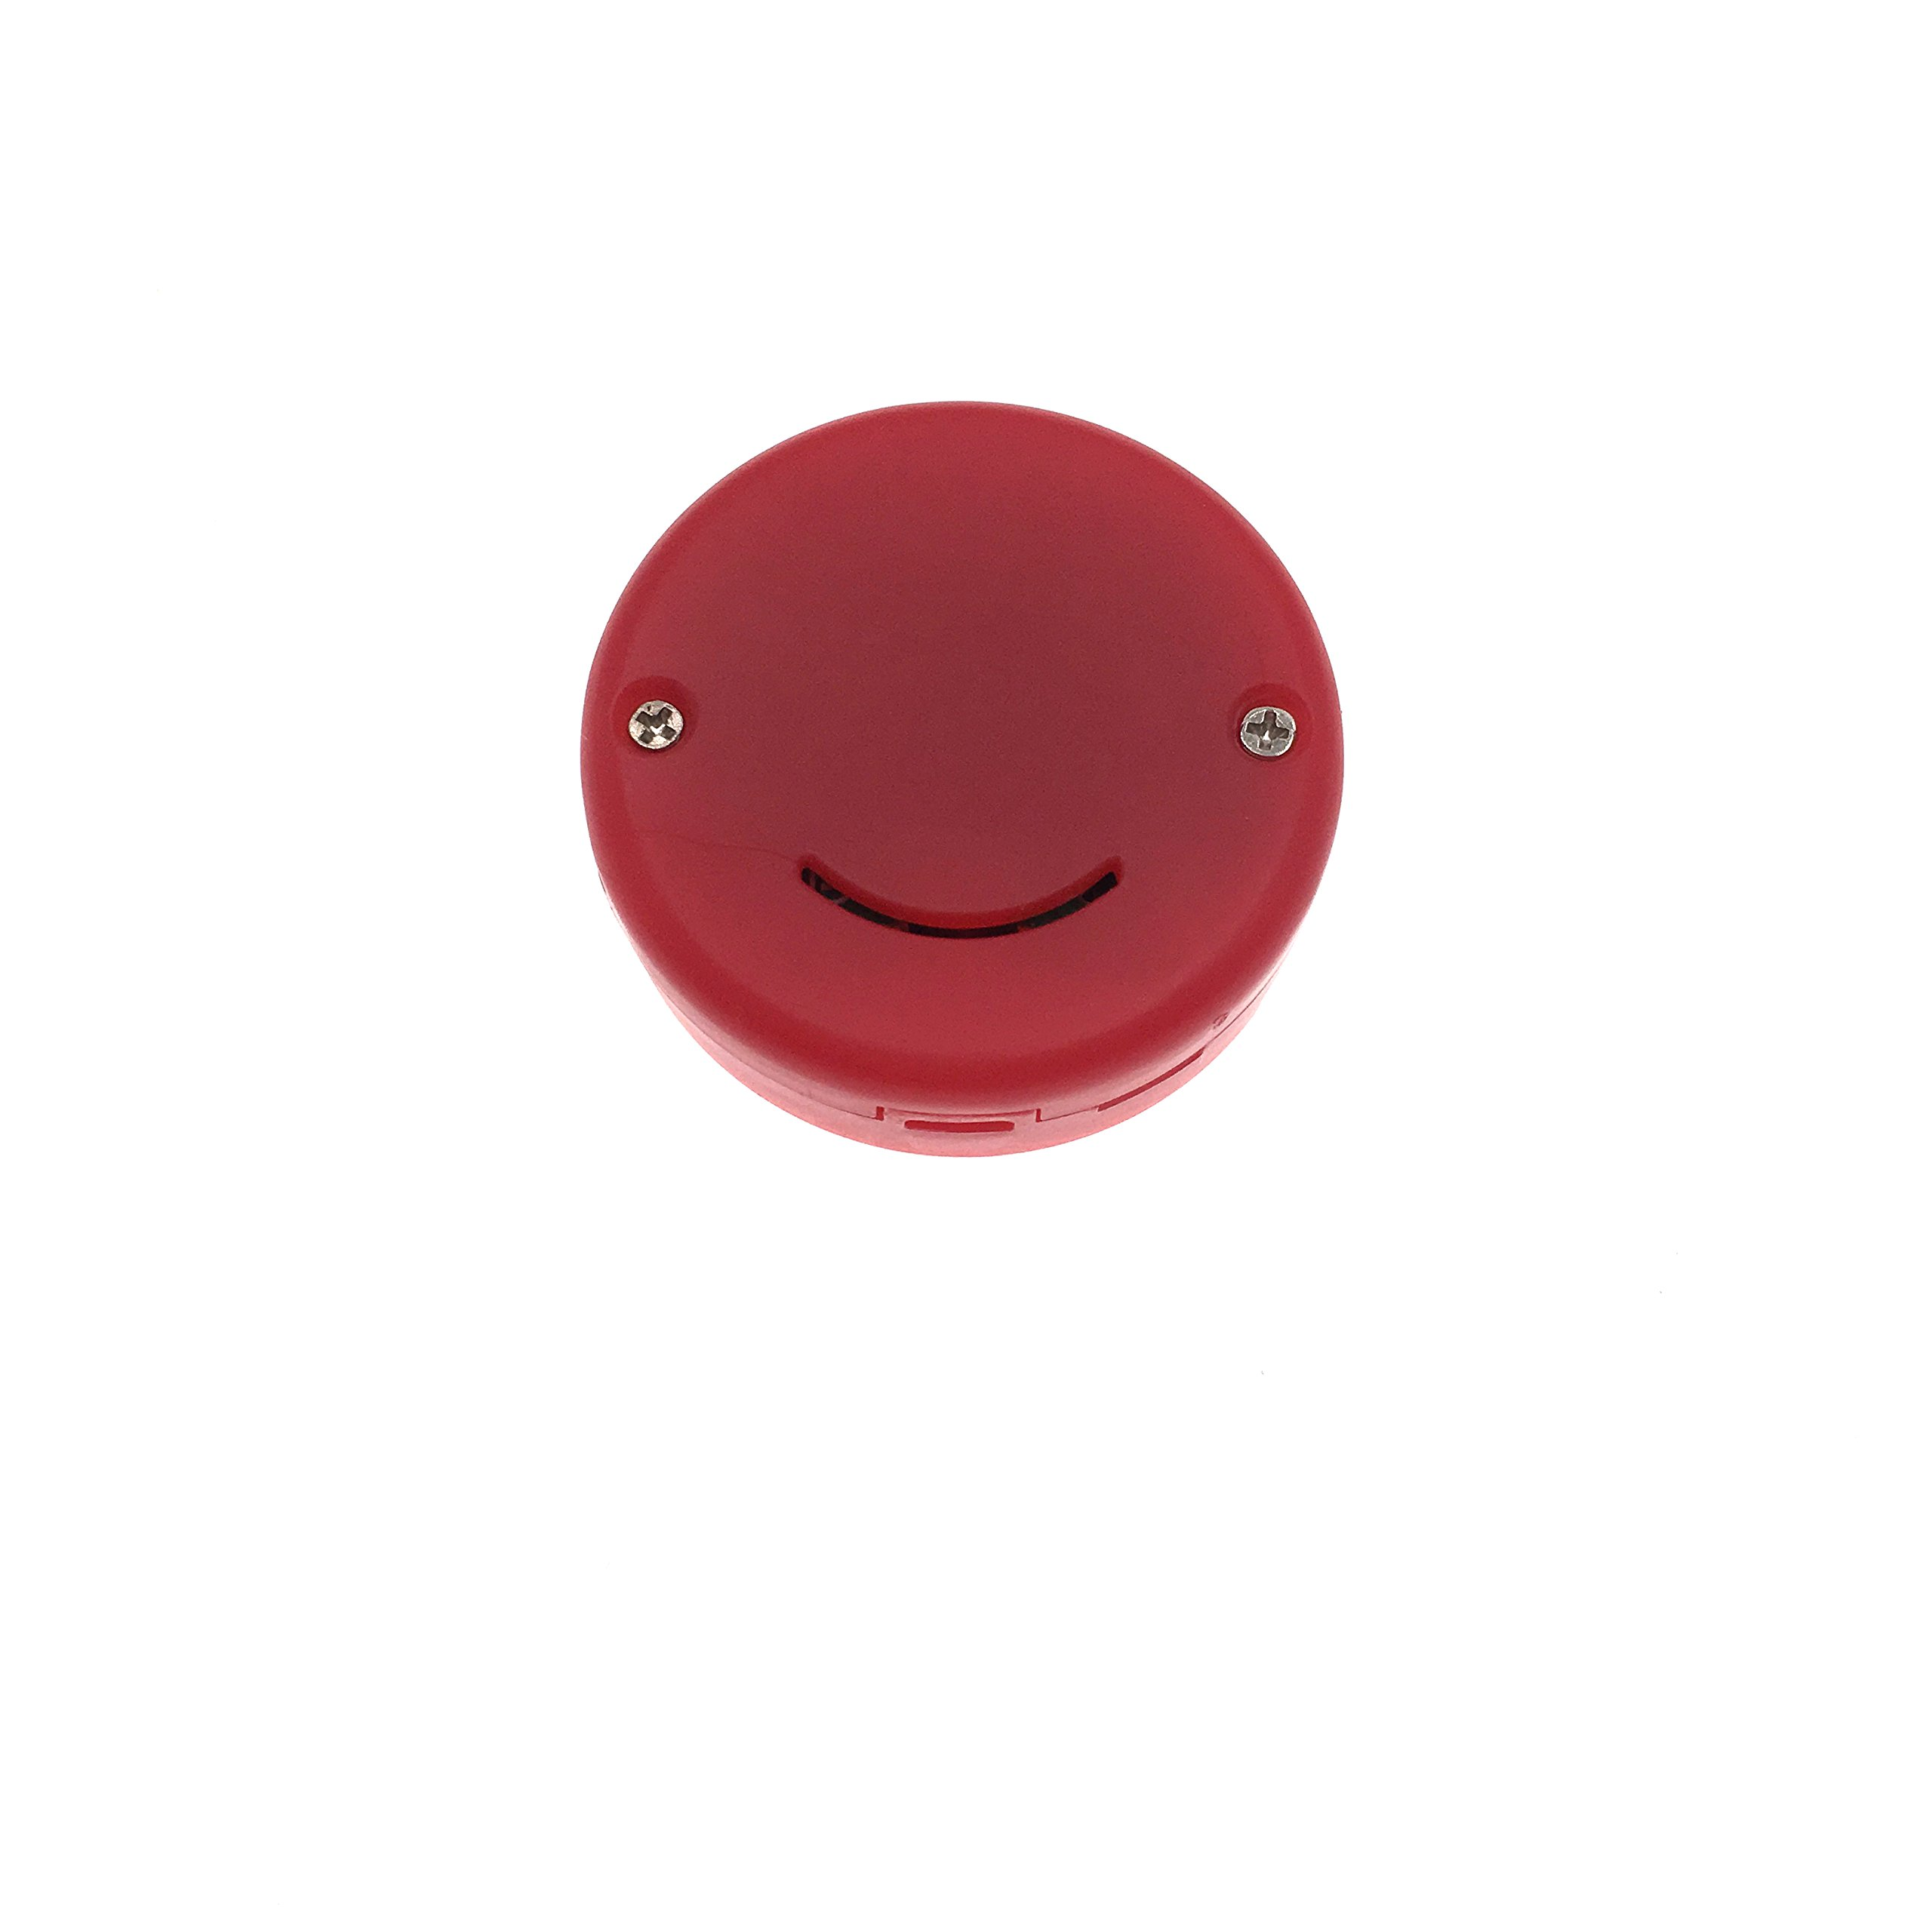 Bluetooth BLE 4.0/4.1 Programmable Beacon/iBeacon Compatible with Eddystone TI CC2540/2541 Chip JO-BEC05 Replaceable Battery 171023 by JINOU/OEM (Image #1)